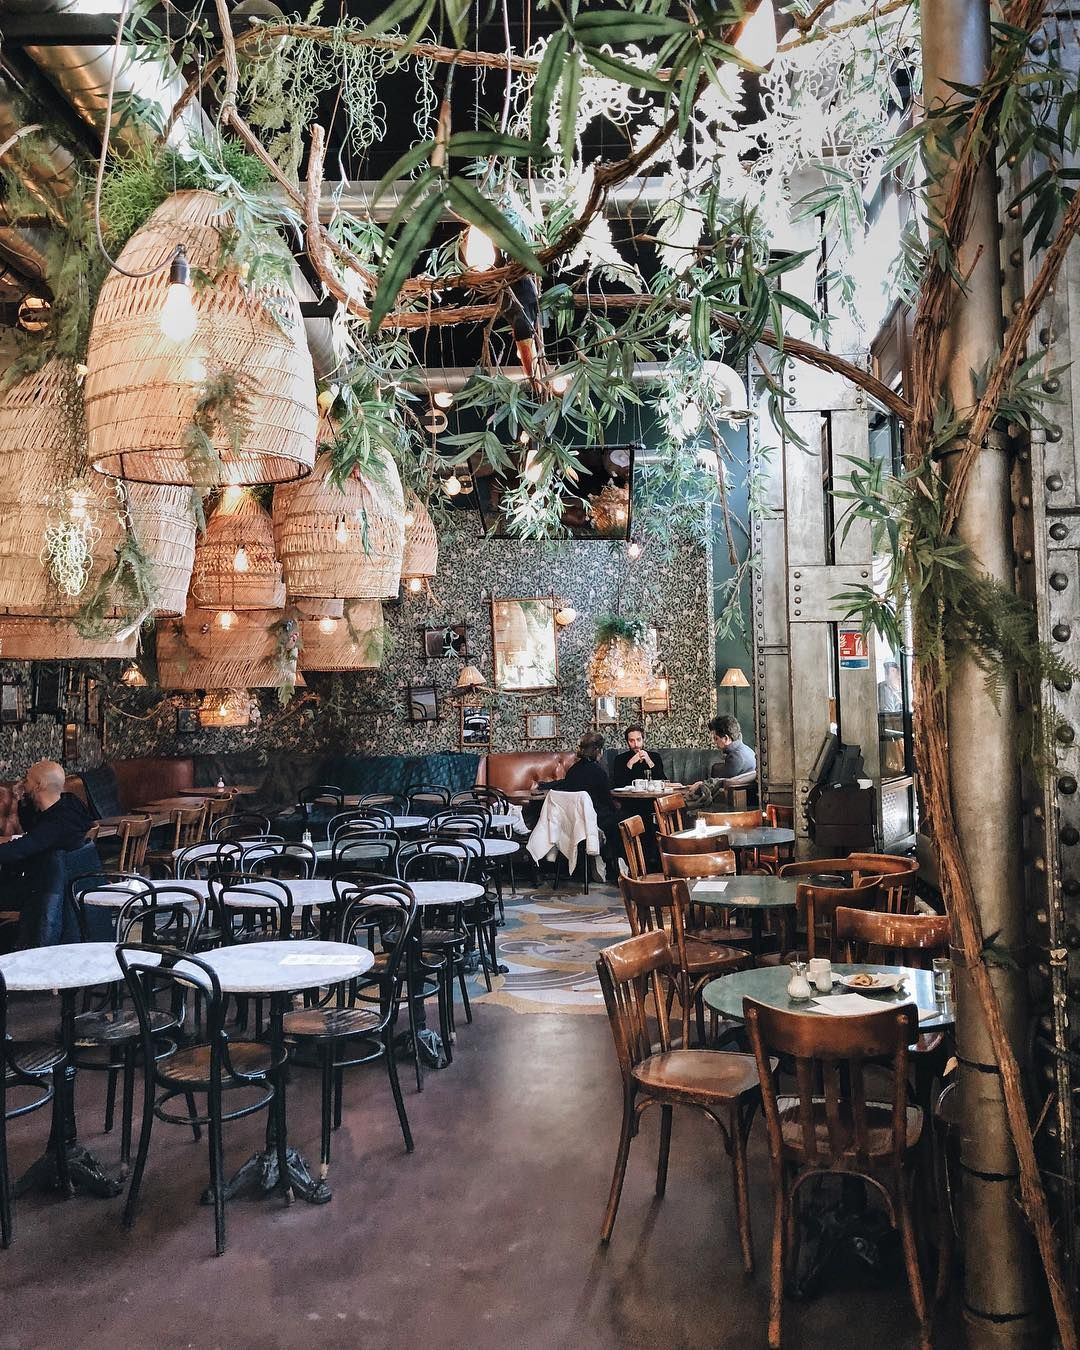 PlantFilled Restaurants Around the World  Tips For Decorating With Greenery is part of Bar design restaurant - Does your plant collection need a refresh  We're feeling inspired by these 11 lush restaurant that make the most of their leaves  Here are 11 new decorating ideas we're stealing from these plantfilled spots